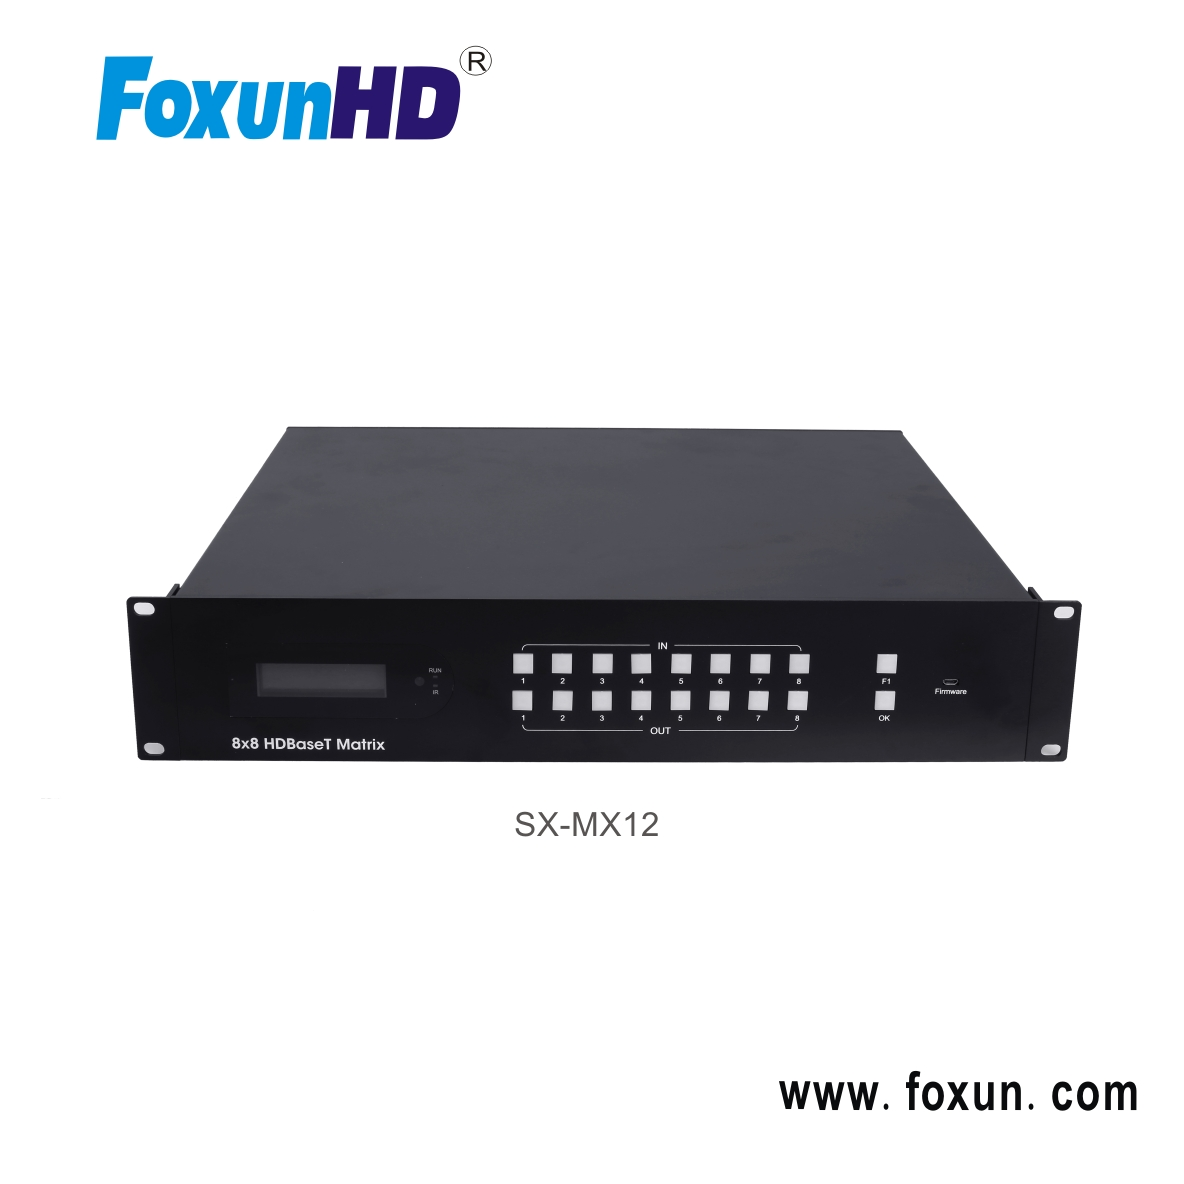 New HDBaseT 8x8 70m Matrix Support 4K@60Hz,YUV4:2:0, with audio in and out